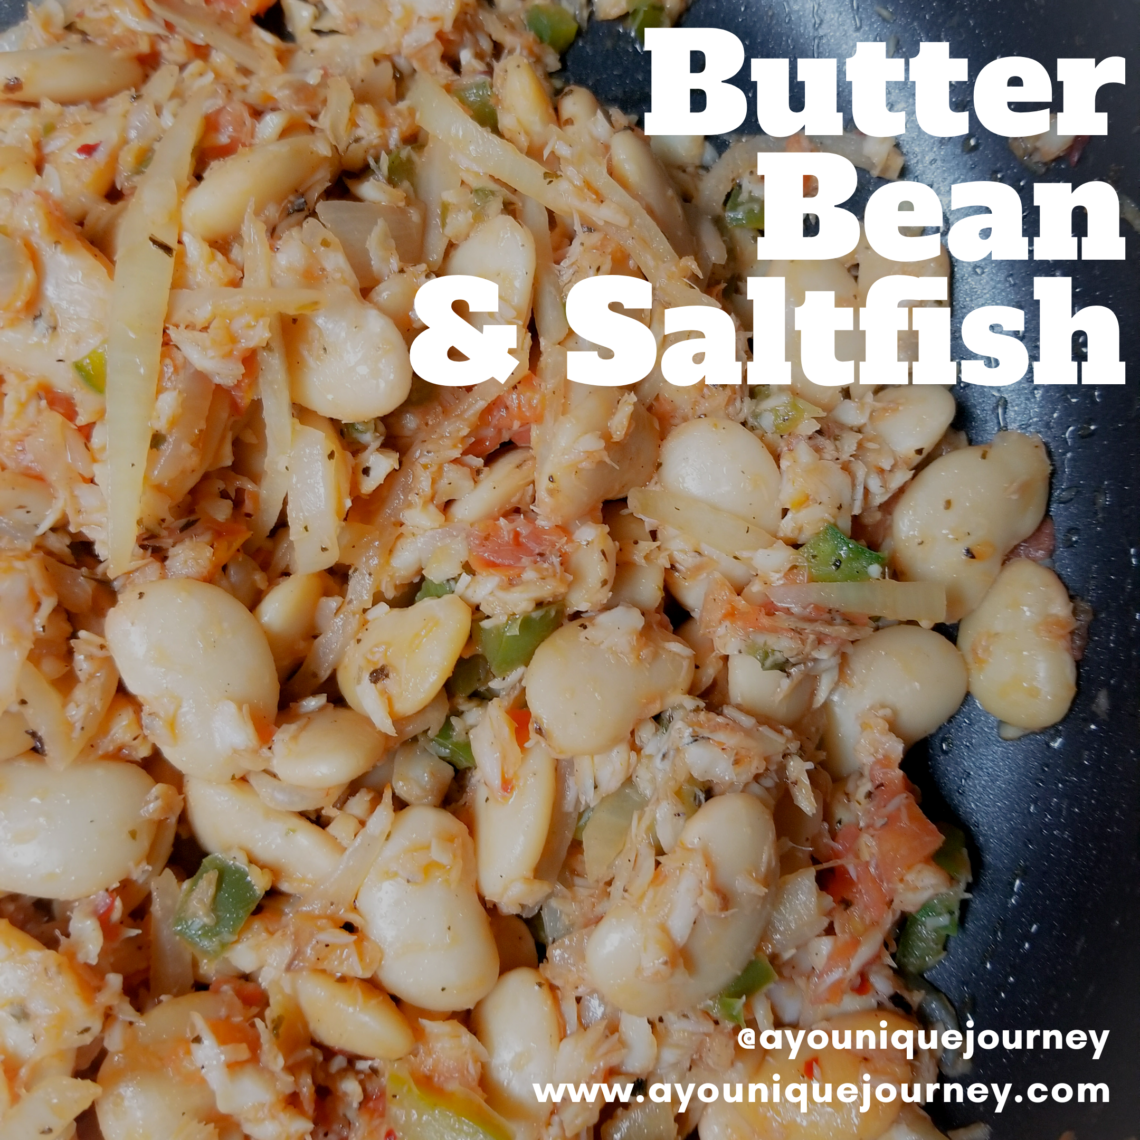 Butter Beans and Saltfish in a skillet.